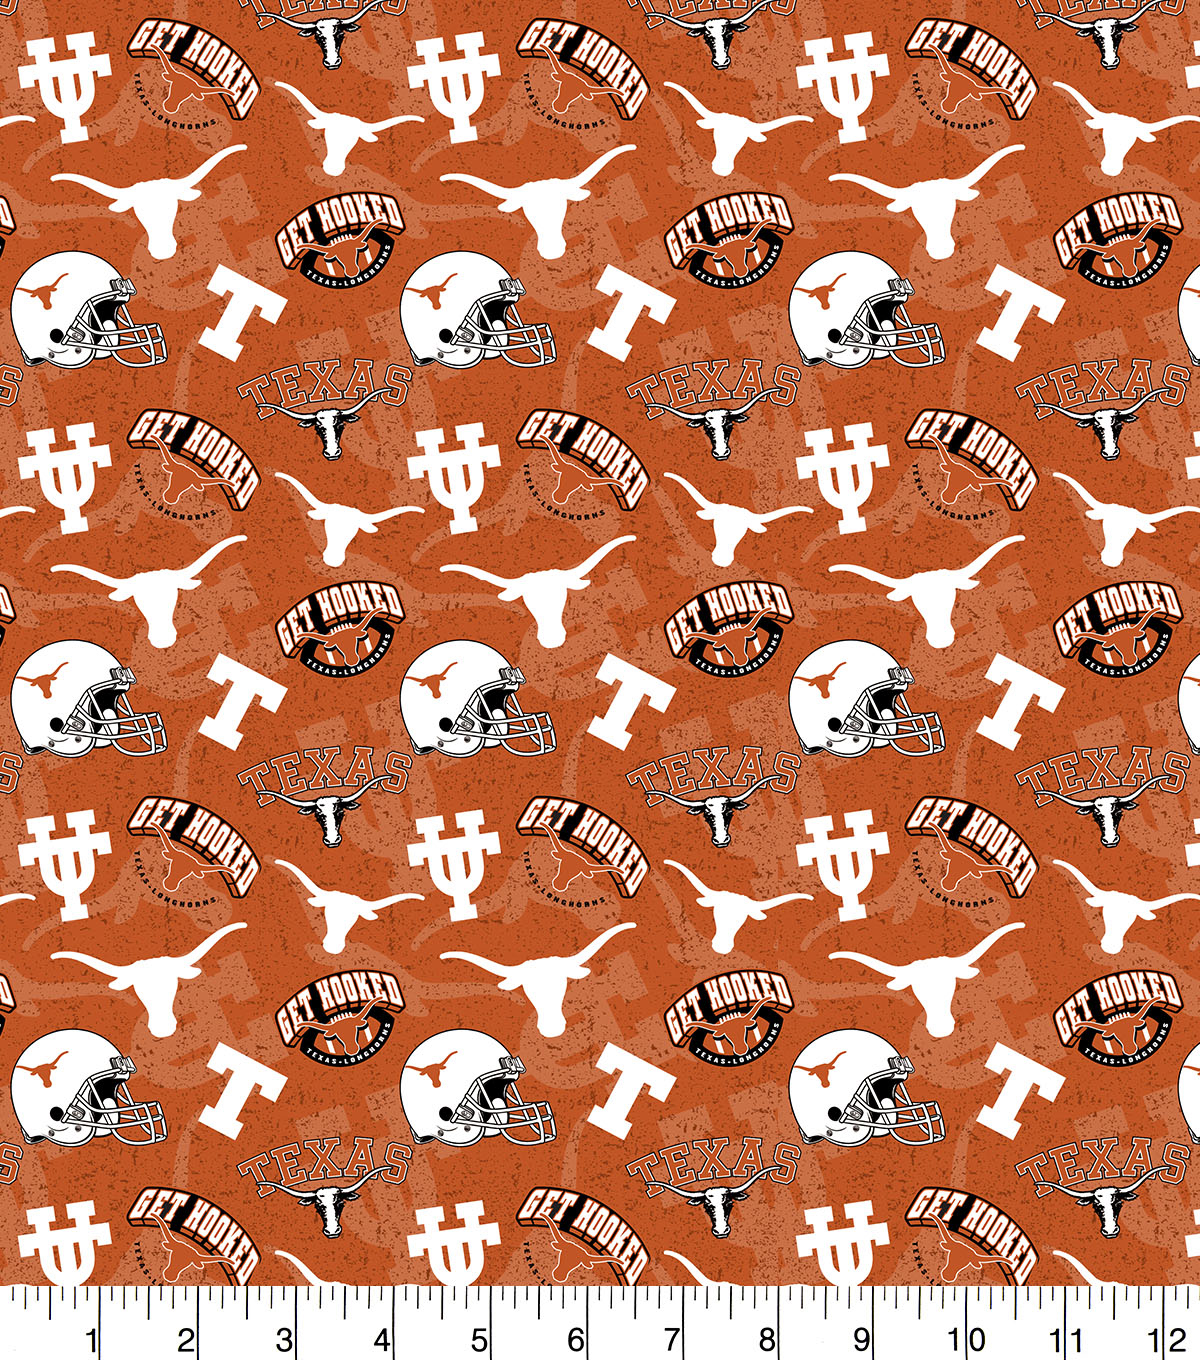 University of Texas Cotton Fabric-Tone on Tone